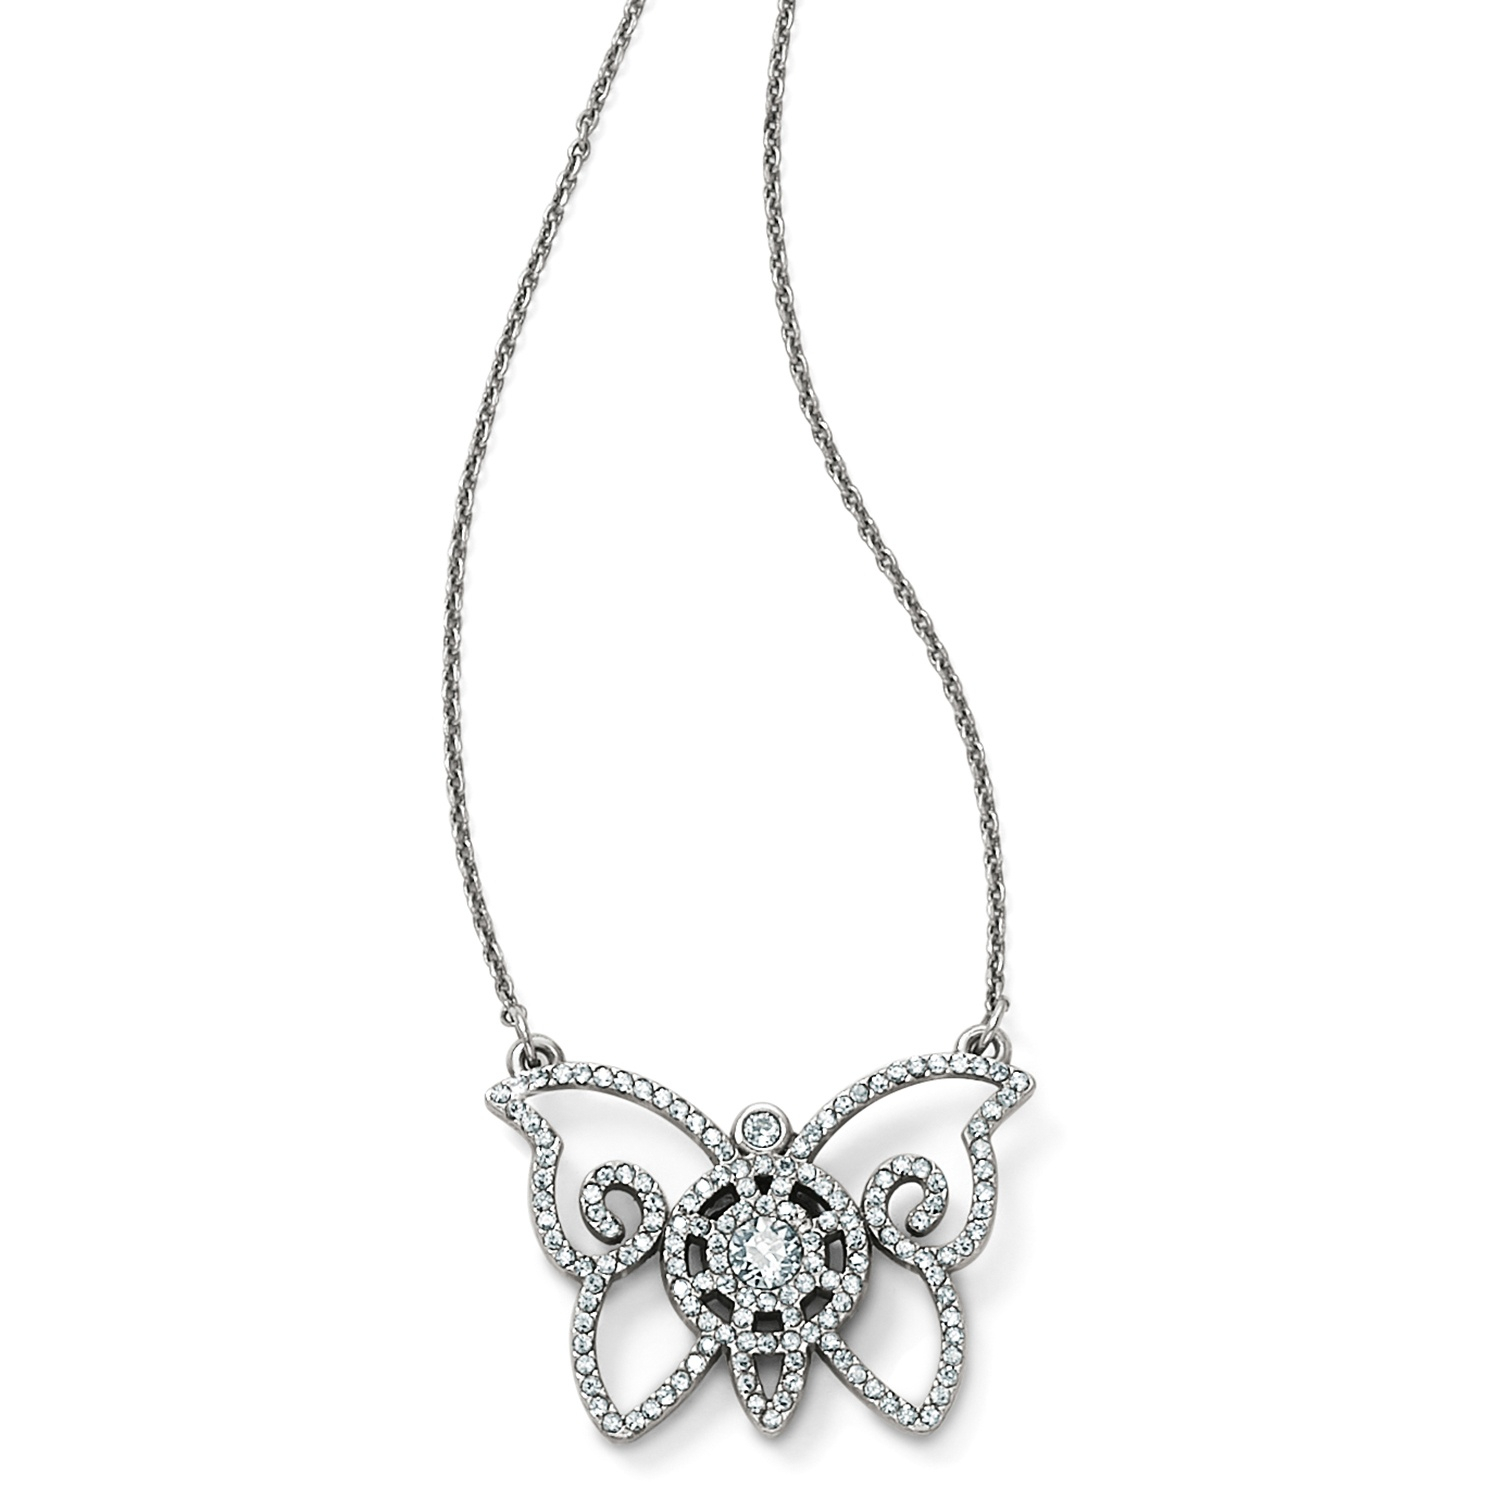 Illumina Petite Butterfly Necklace Intended For Latest Sparkling Butterfly Y  Necklaces (View 14 of 25)